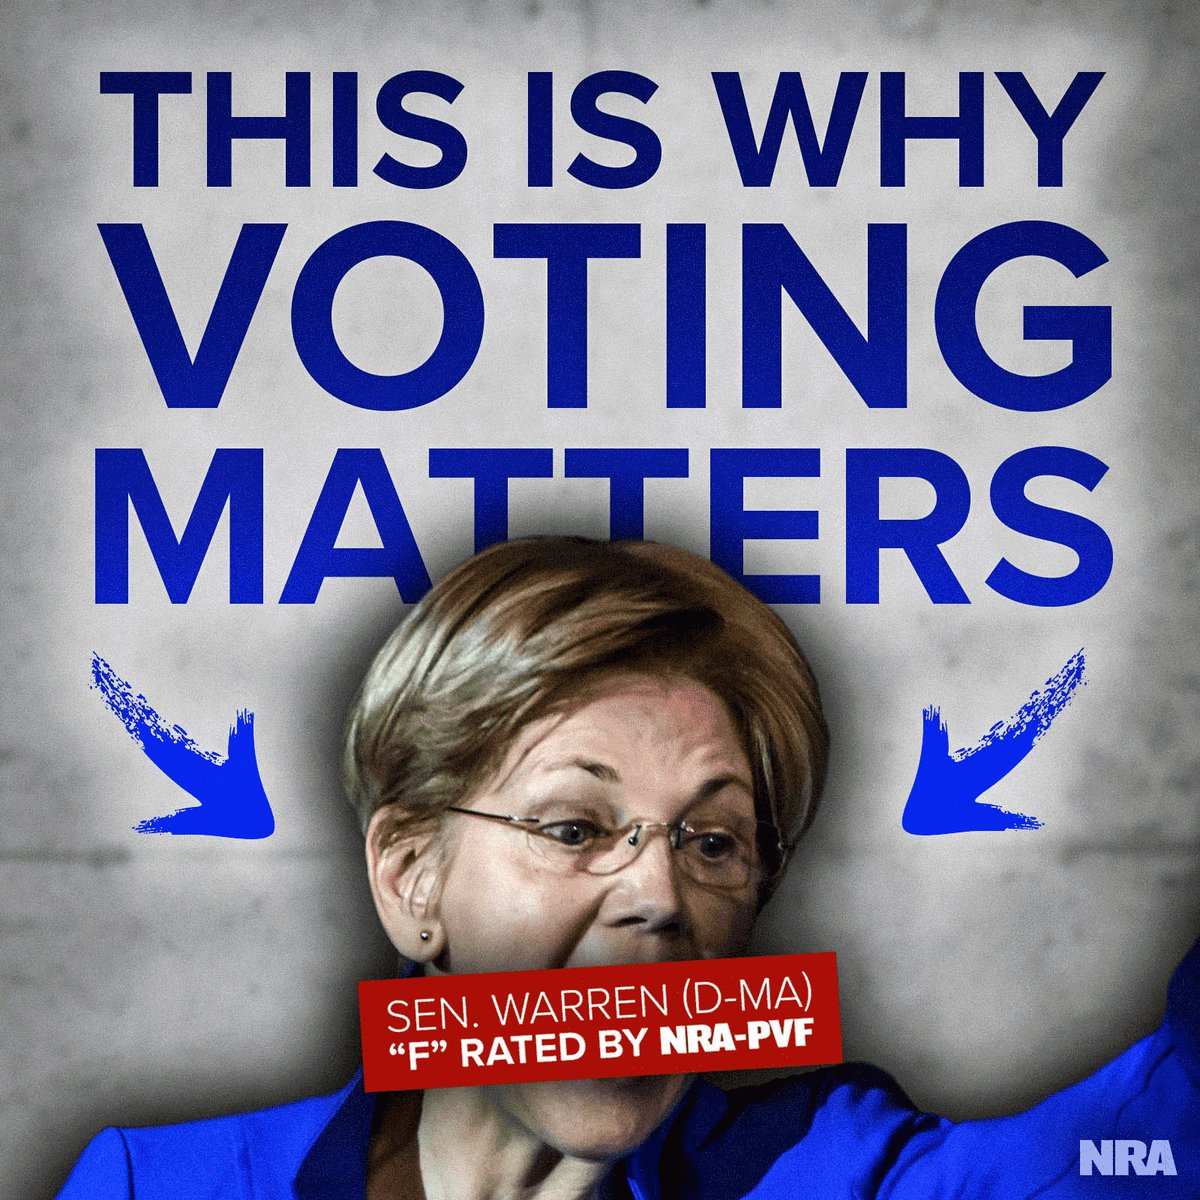 We know it is hard to believe, but voters elected Sen. Warren to the U.S. Senate in 2012. Sen. Warren has a long history of supporting anti-gun legislation and misleading people. Visit NRAPVF.org to find out who will defend your rights before heading to the polls!